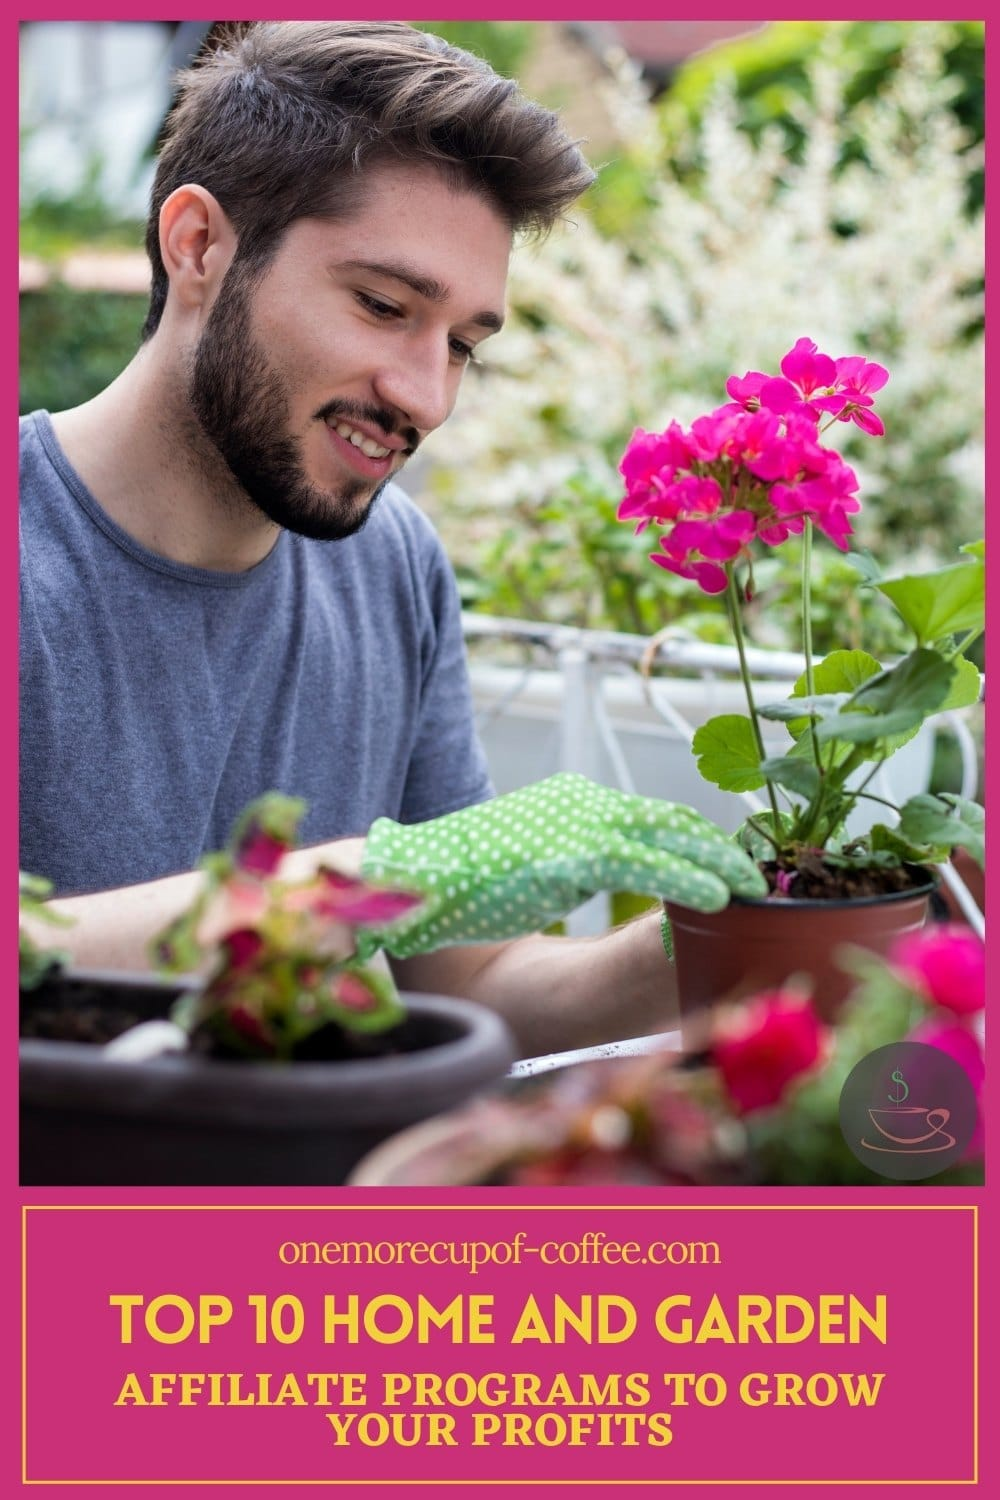 bearded man tending to his potted plants with text overlay in pink background